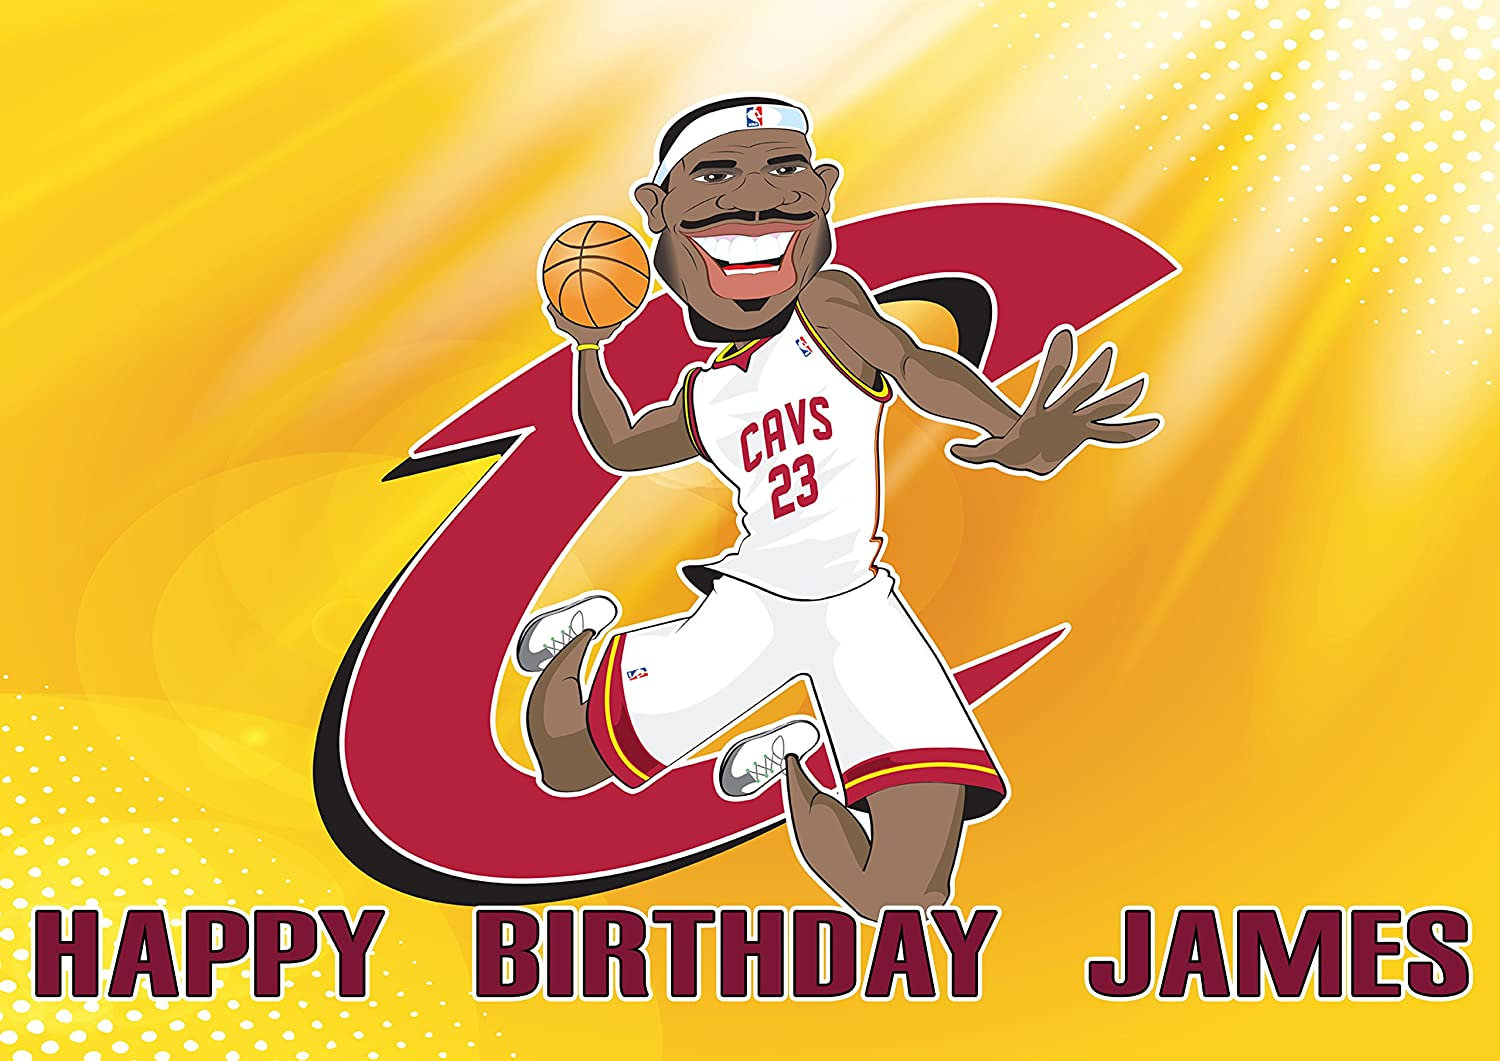 Fabulous Lebron James Cleaveland Cavaliers Birthday Cake Personalized Cake Funny Birthday Cards Online Alyptdamsfinfo